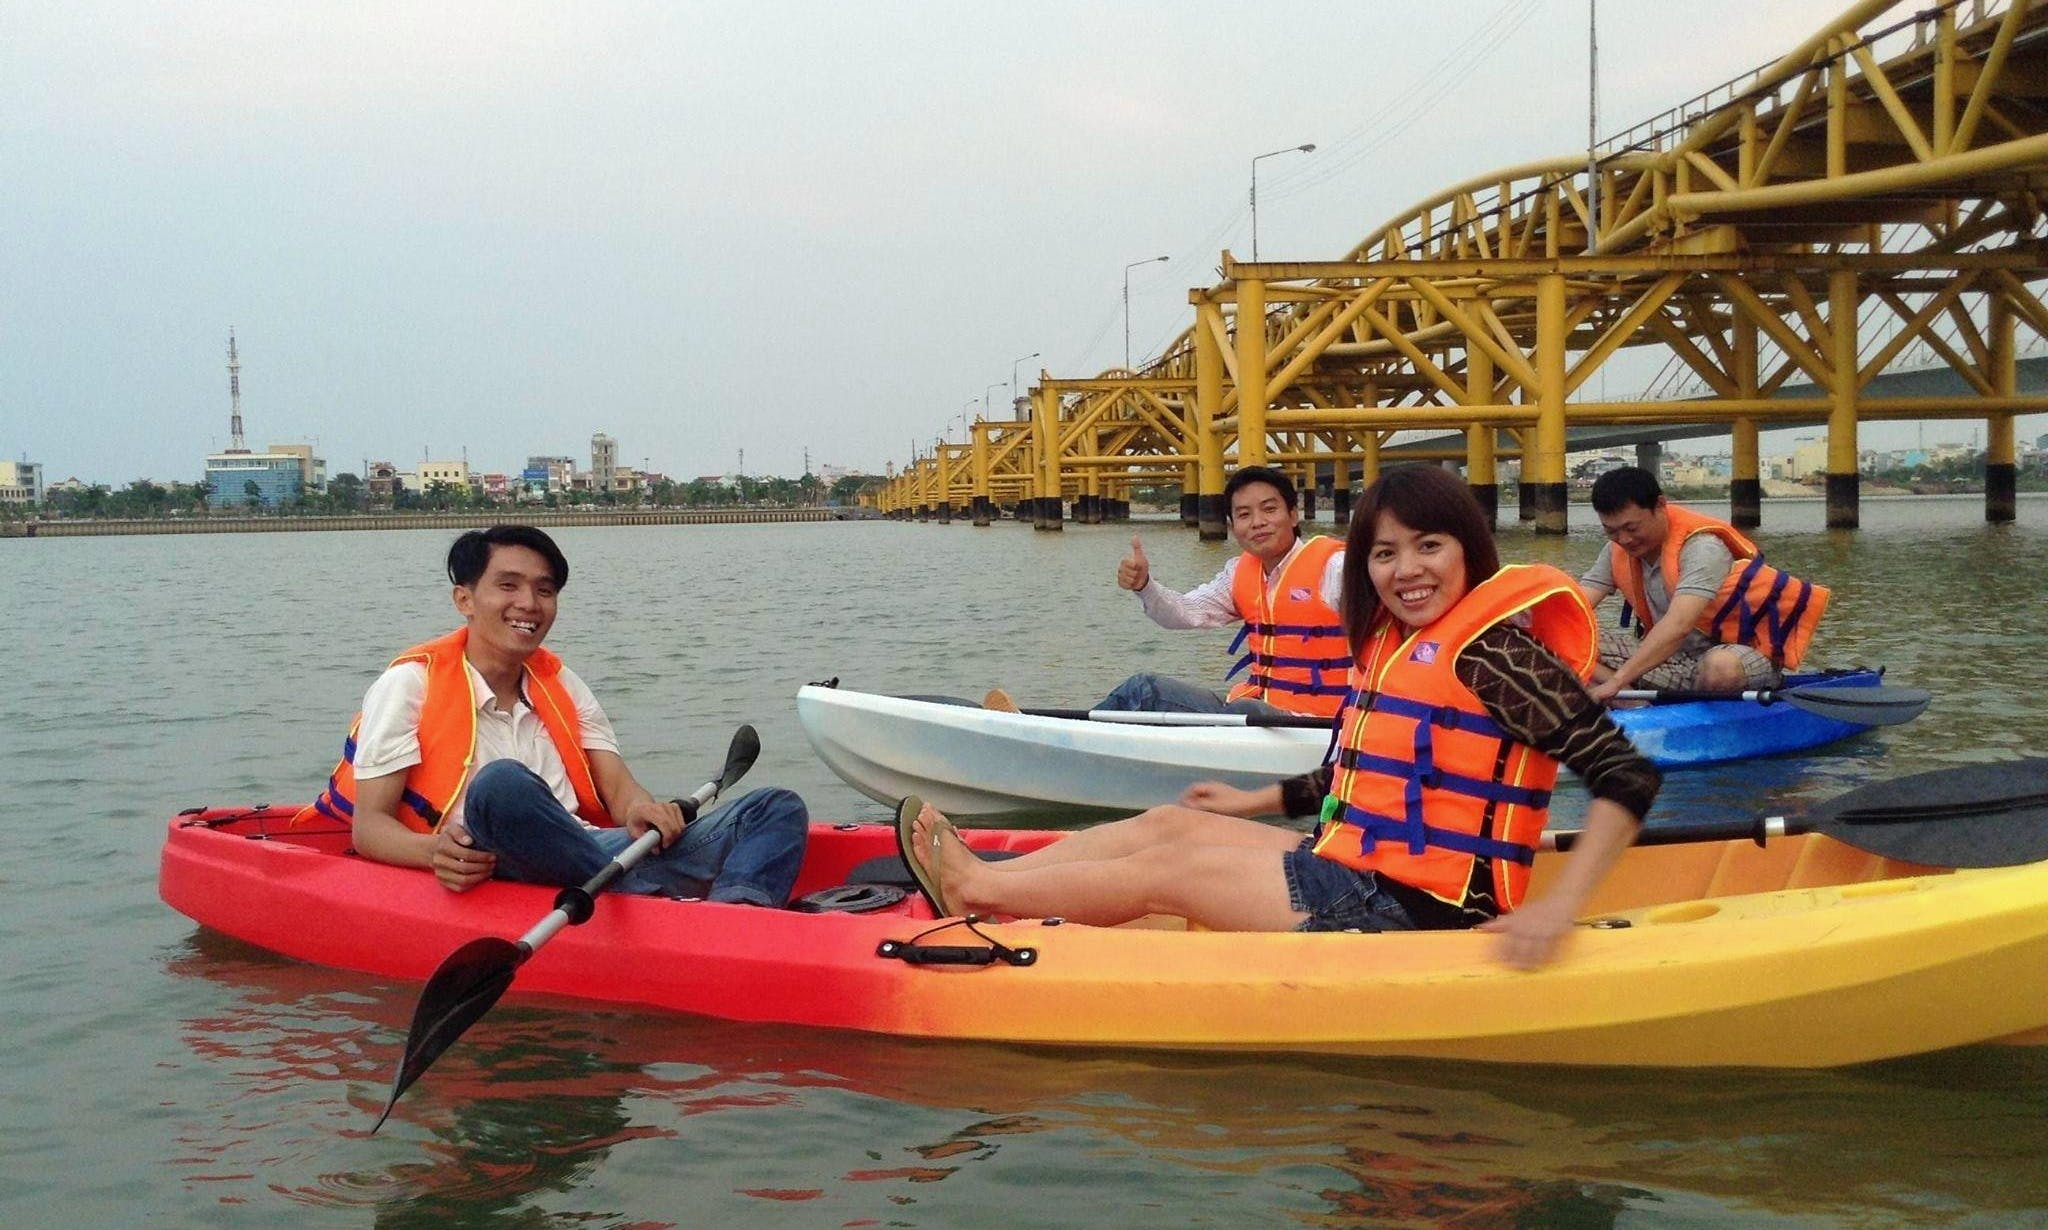 Kayak Rental in Da Nang city, Vietnam